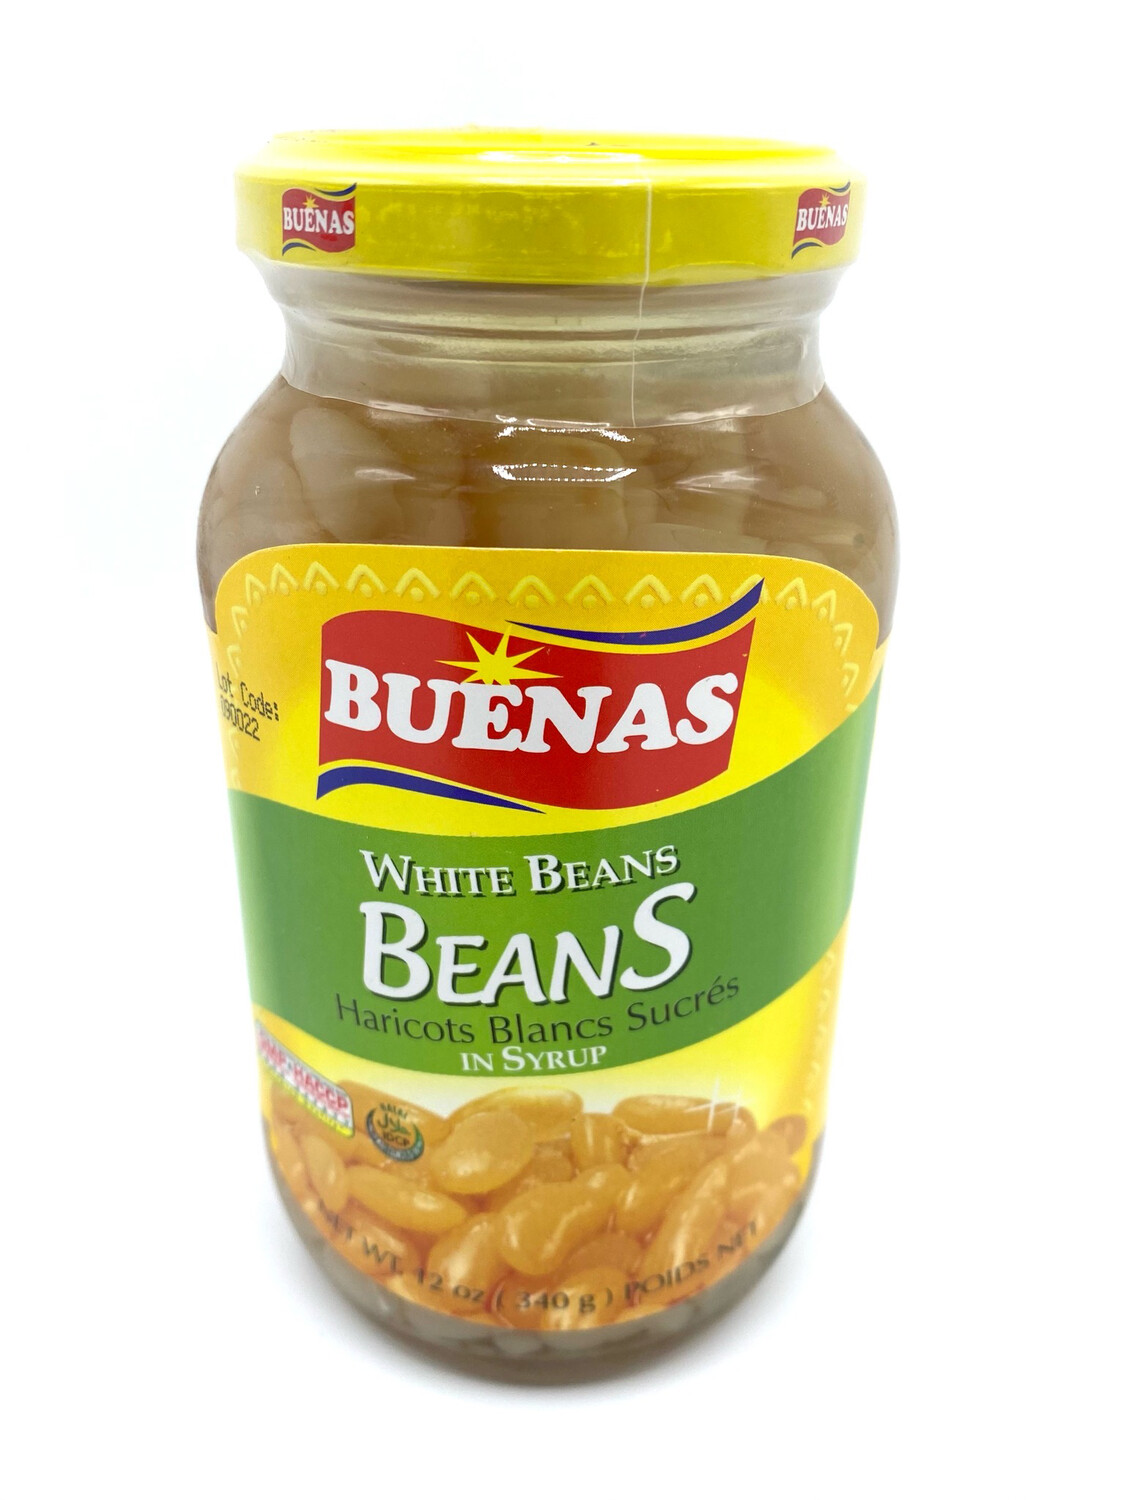 Buenas White Beans In Syrup 12 oz